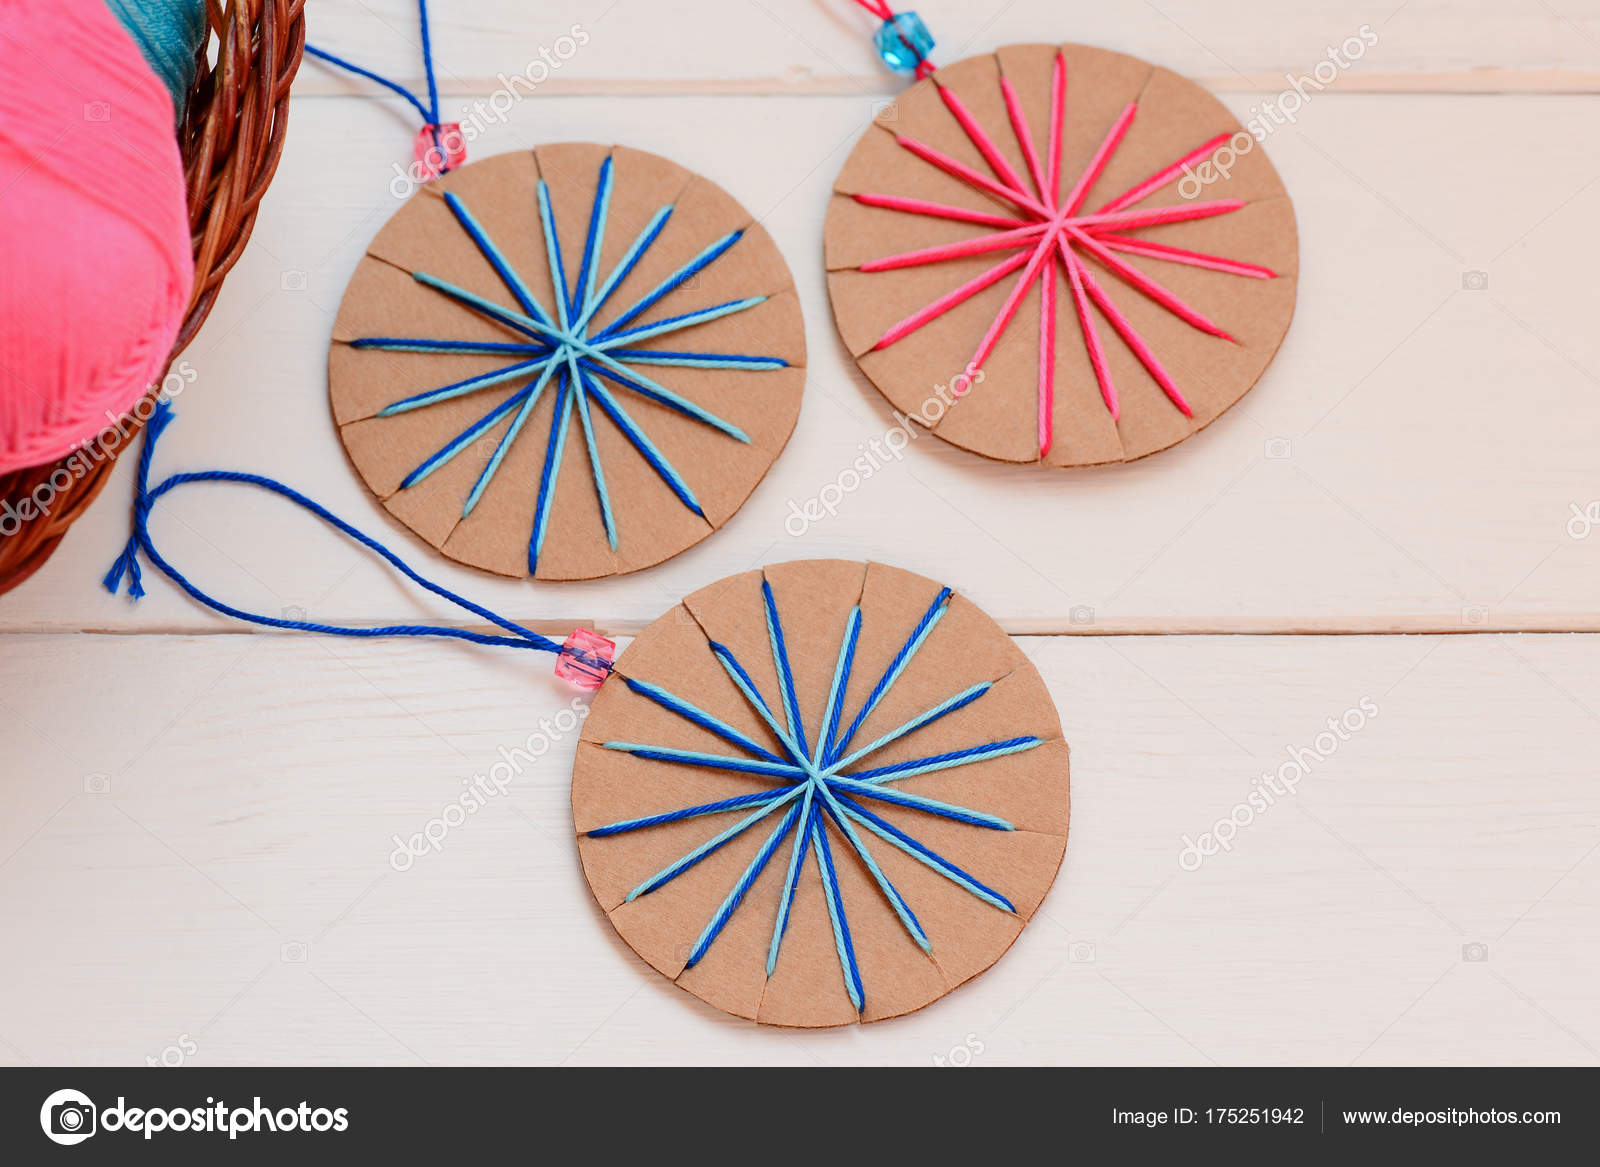 Recycled Christmas Ornaments Ideas.Christmas Balls Ornaments Wooden Table Creative Christmas